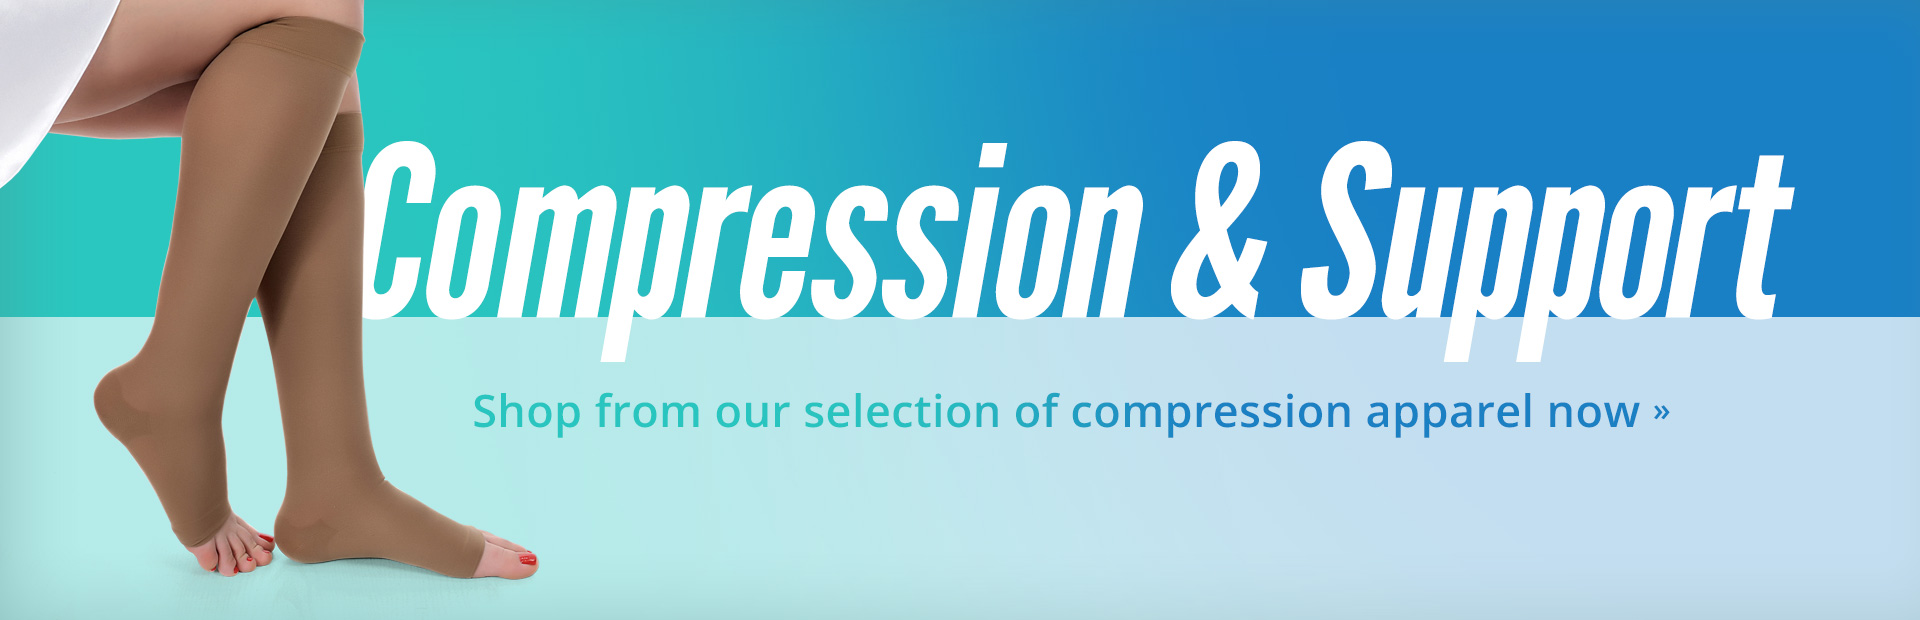 Click here to browse our selection of compression apparel.